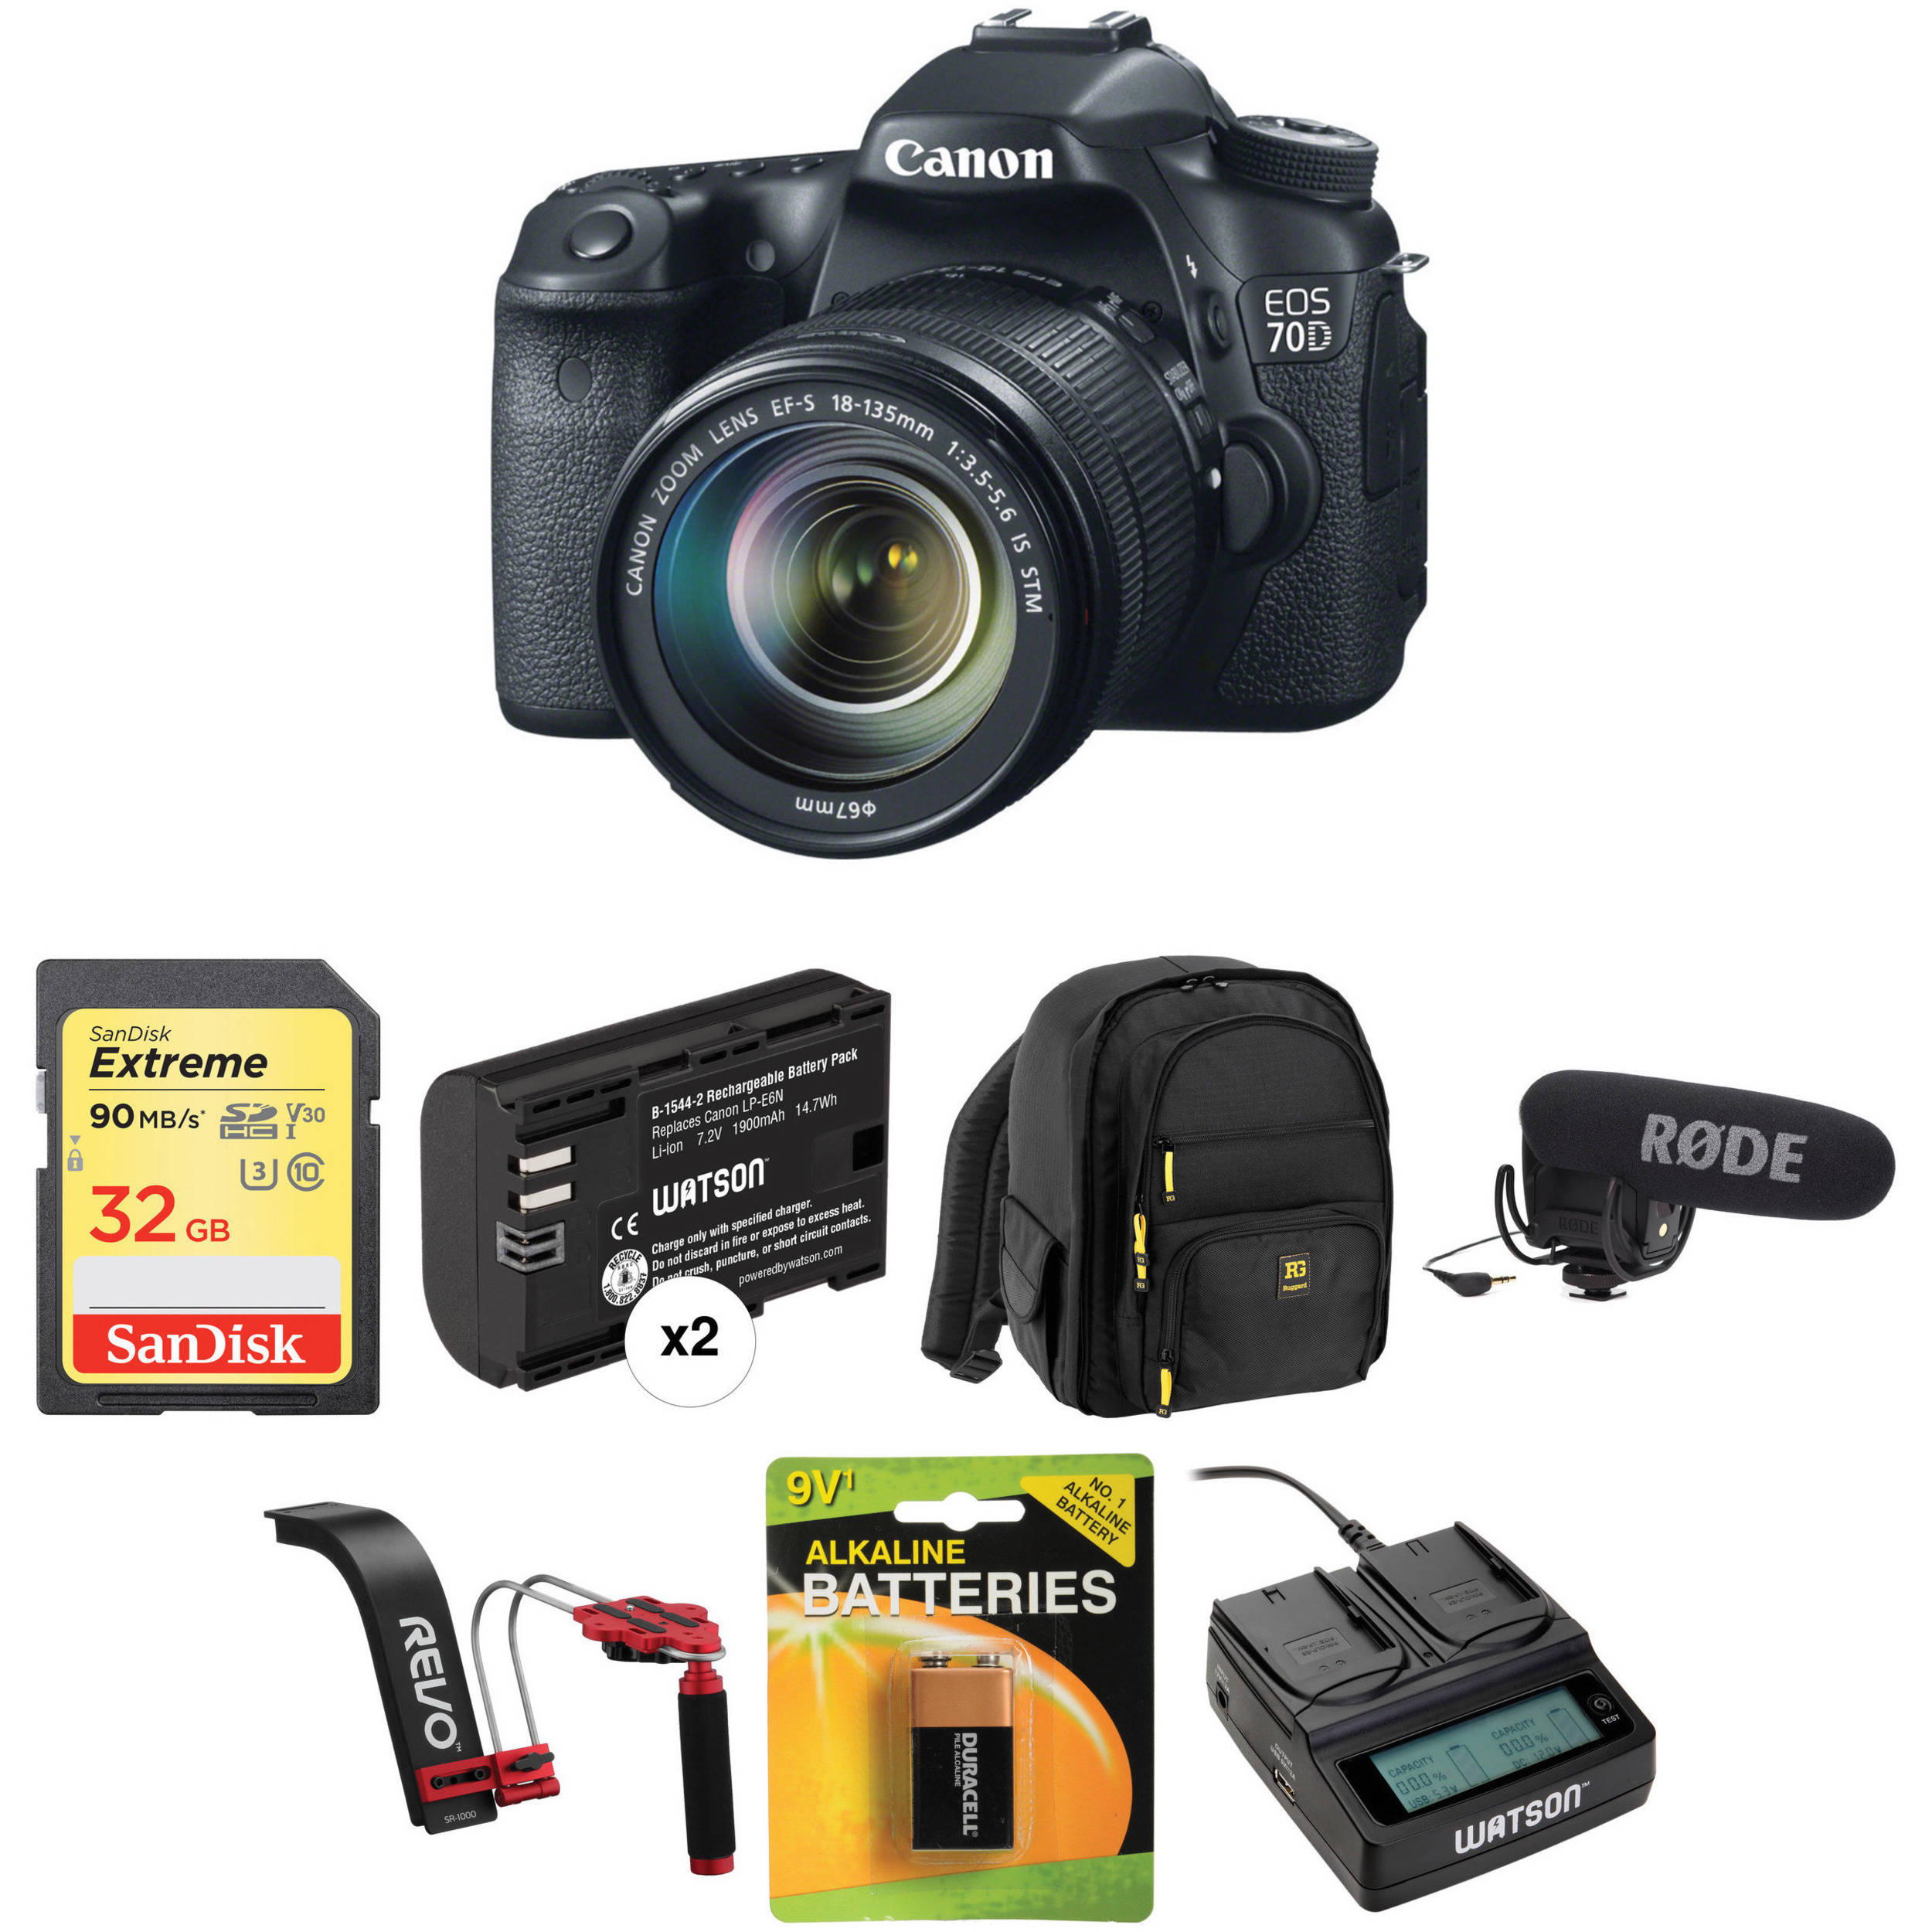 Flossy Canon Eos Dslr Camera Lens Video Kit Canon Eos Dslr Camera Lens Video Kit Photo Canon 70d Deals Canon 70d Usa dpreview Canon 70d Used